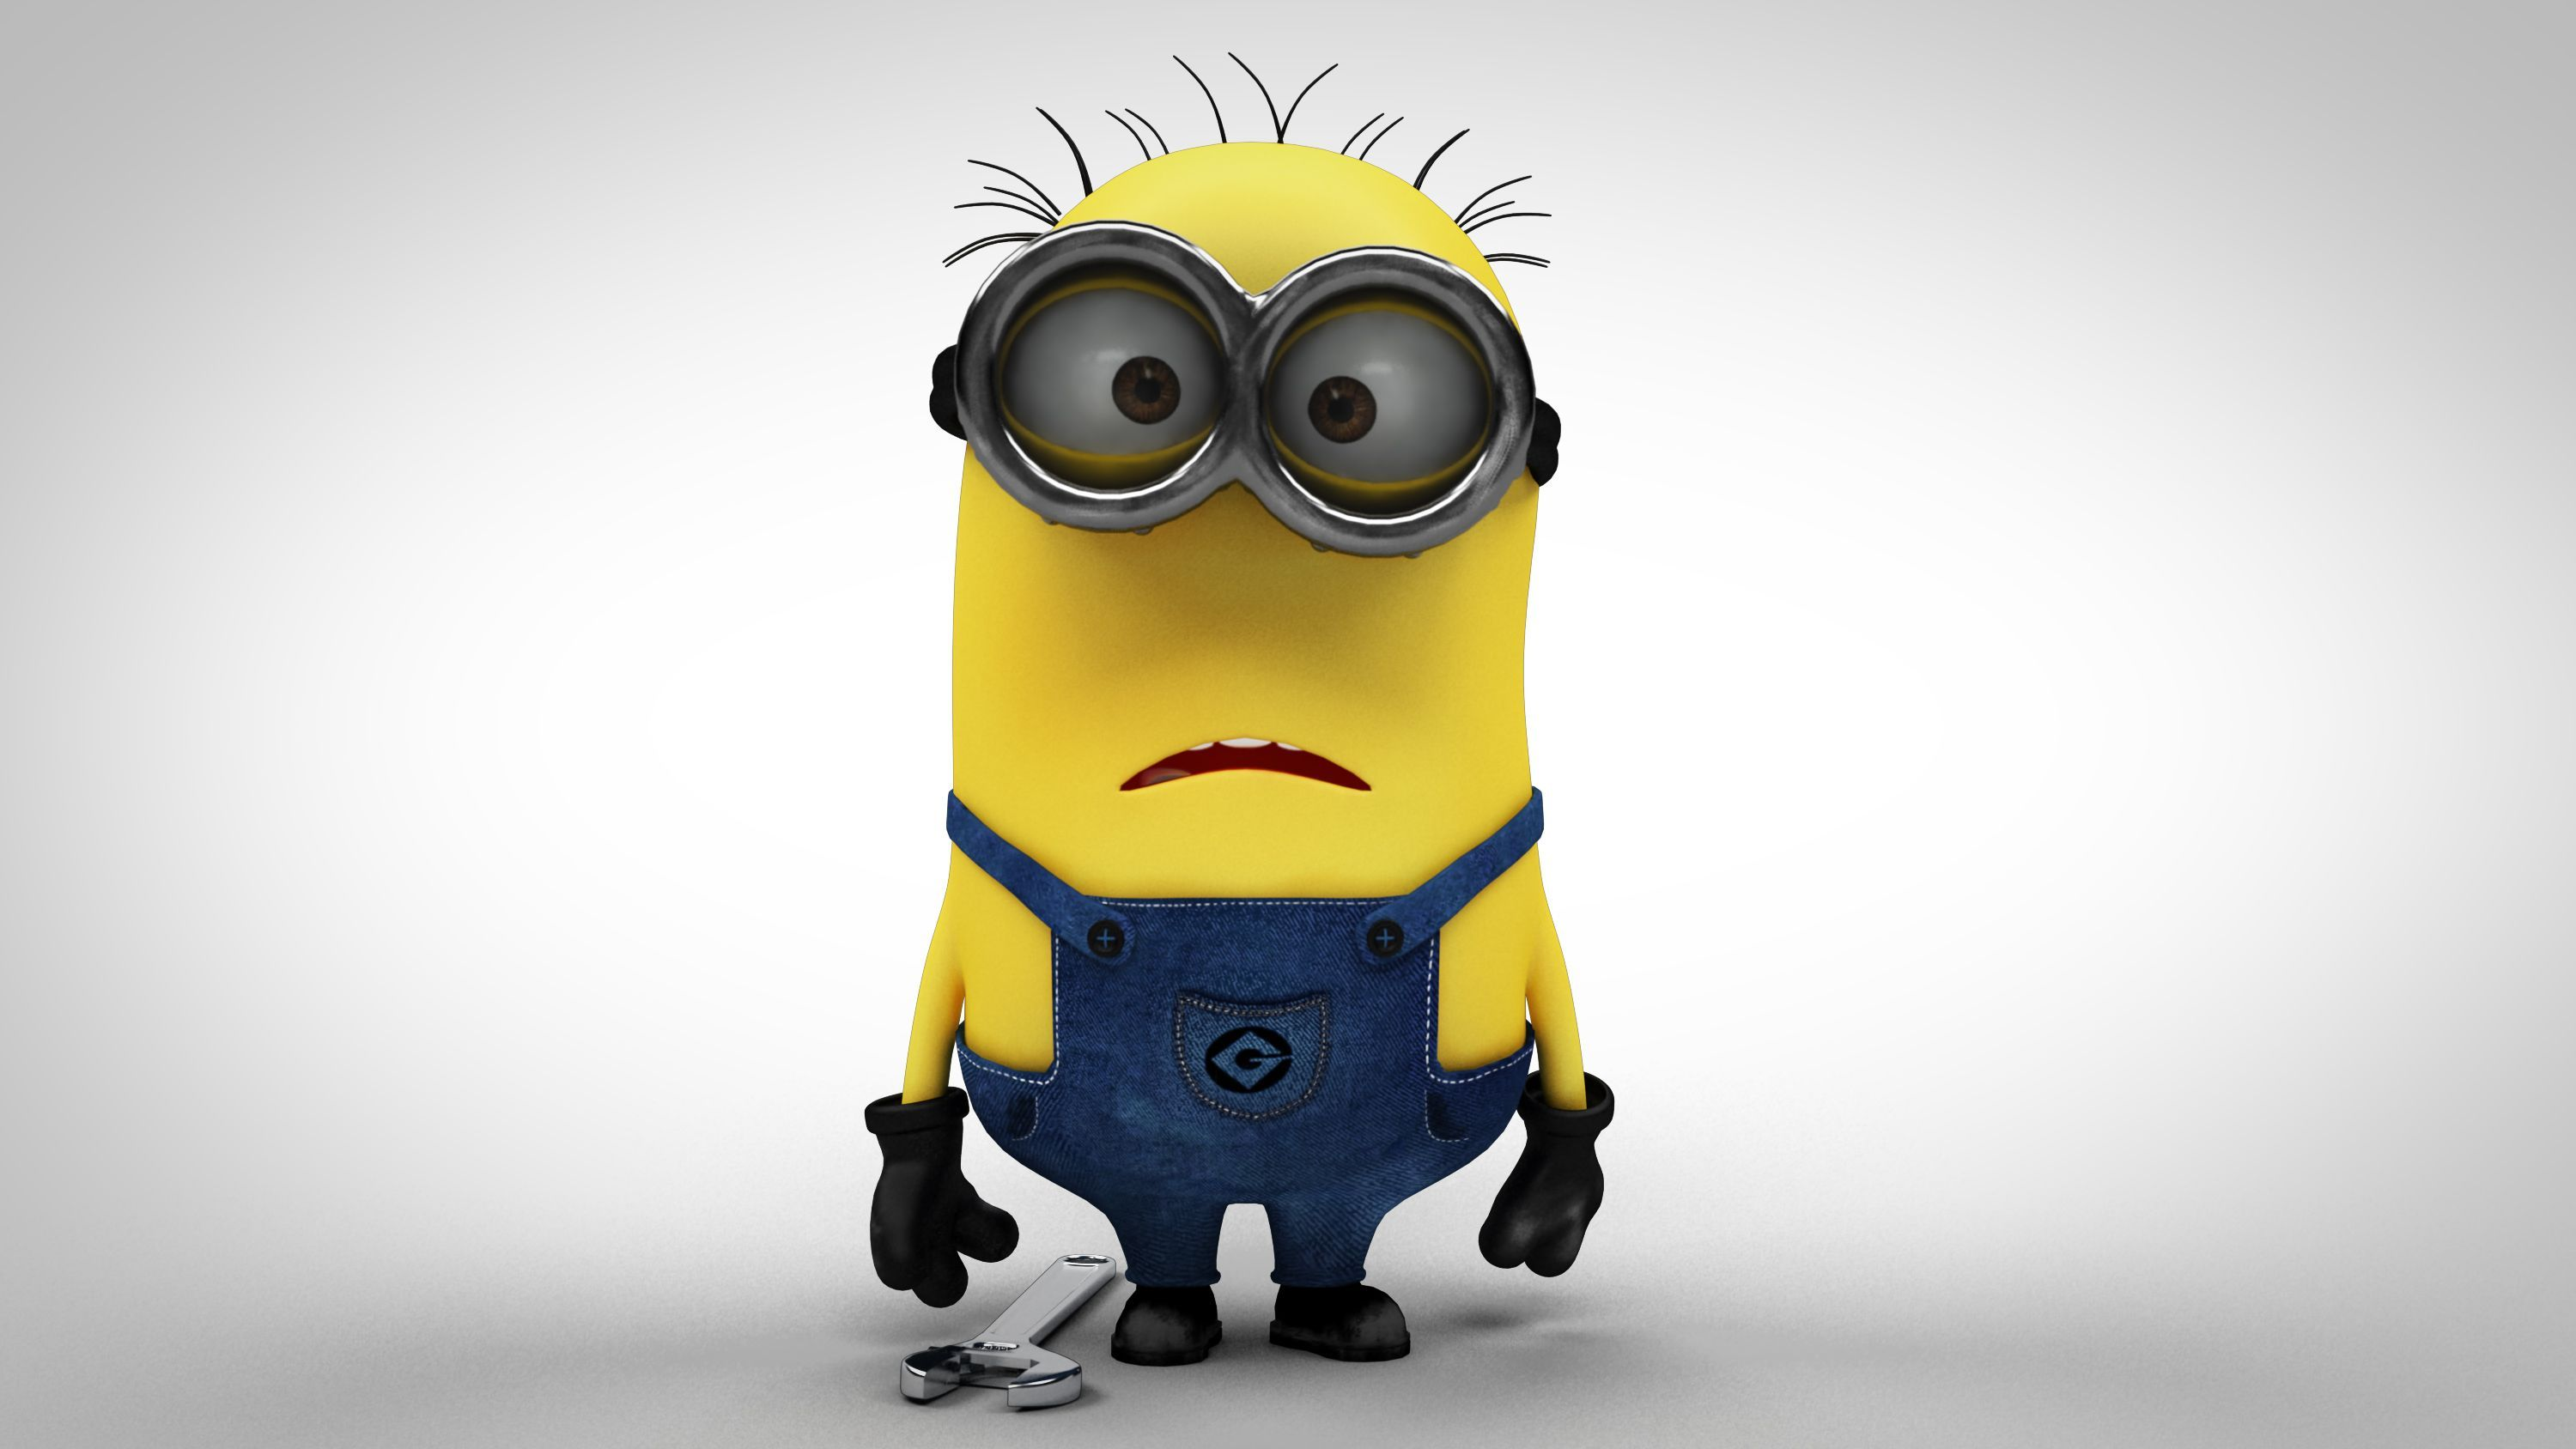 Despicable Me Minion Wallpapers Wallpaper